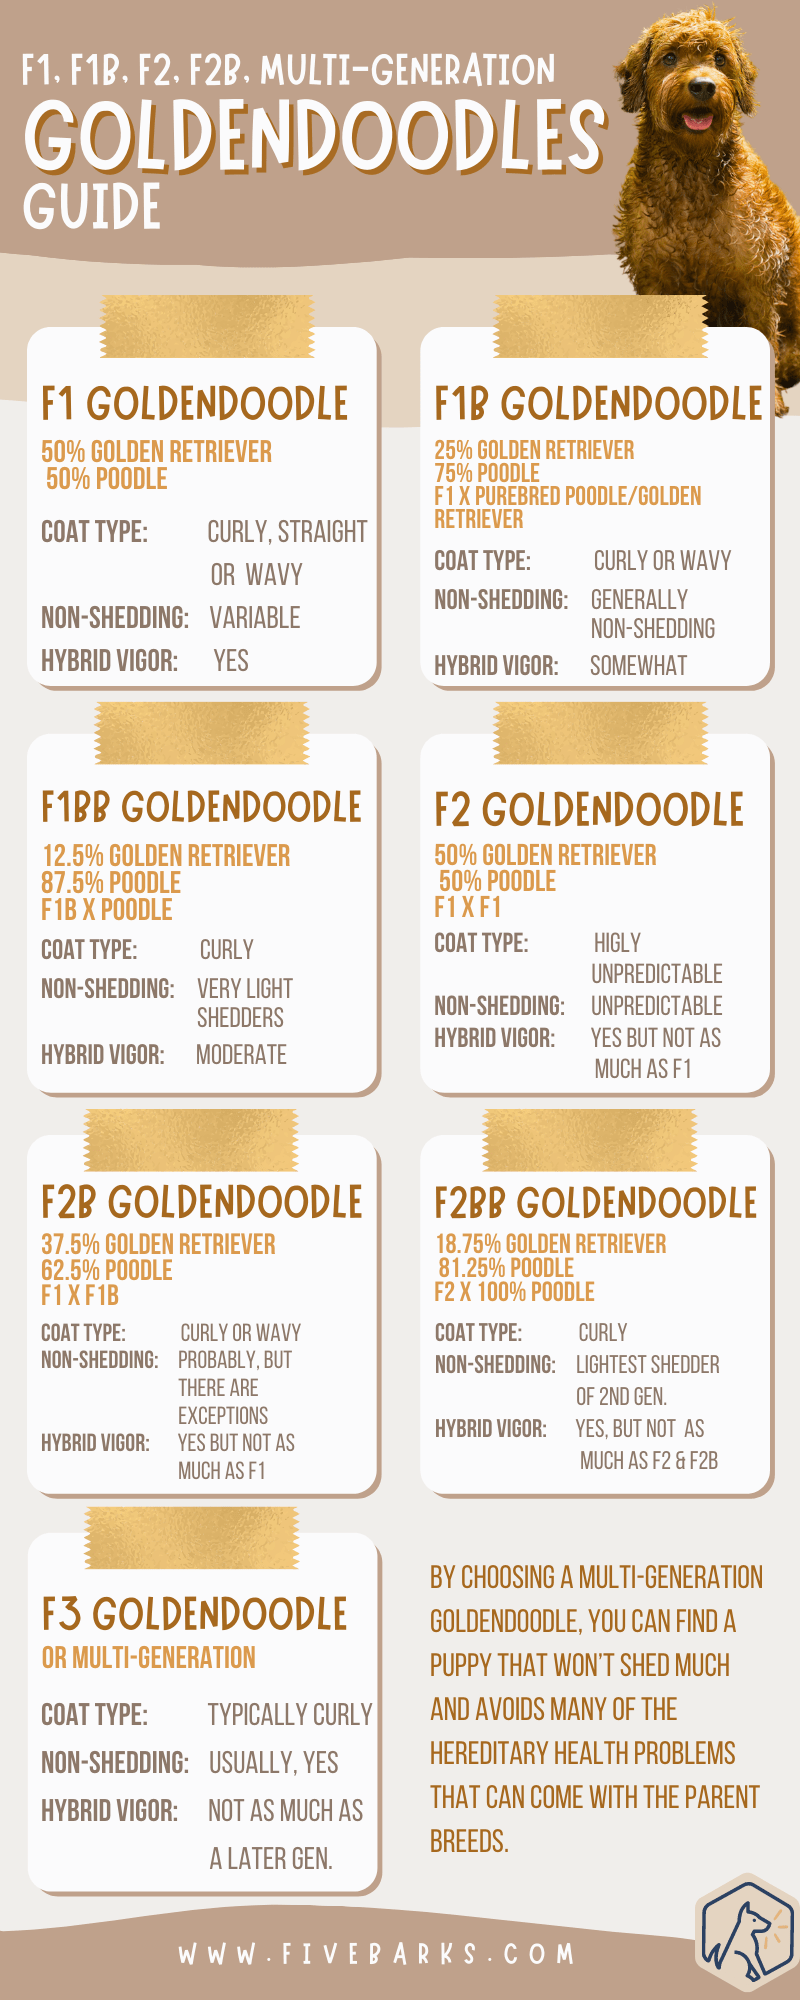 F1, F1B, F2, F2B, Multi-Generation Goldendoodles Guide - Infographic